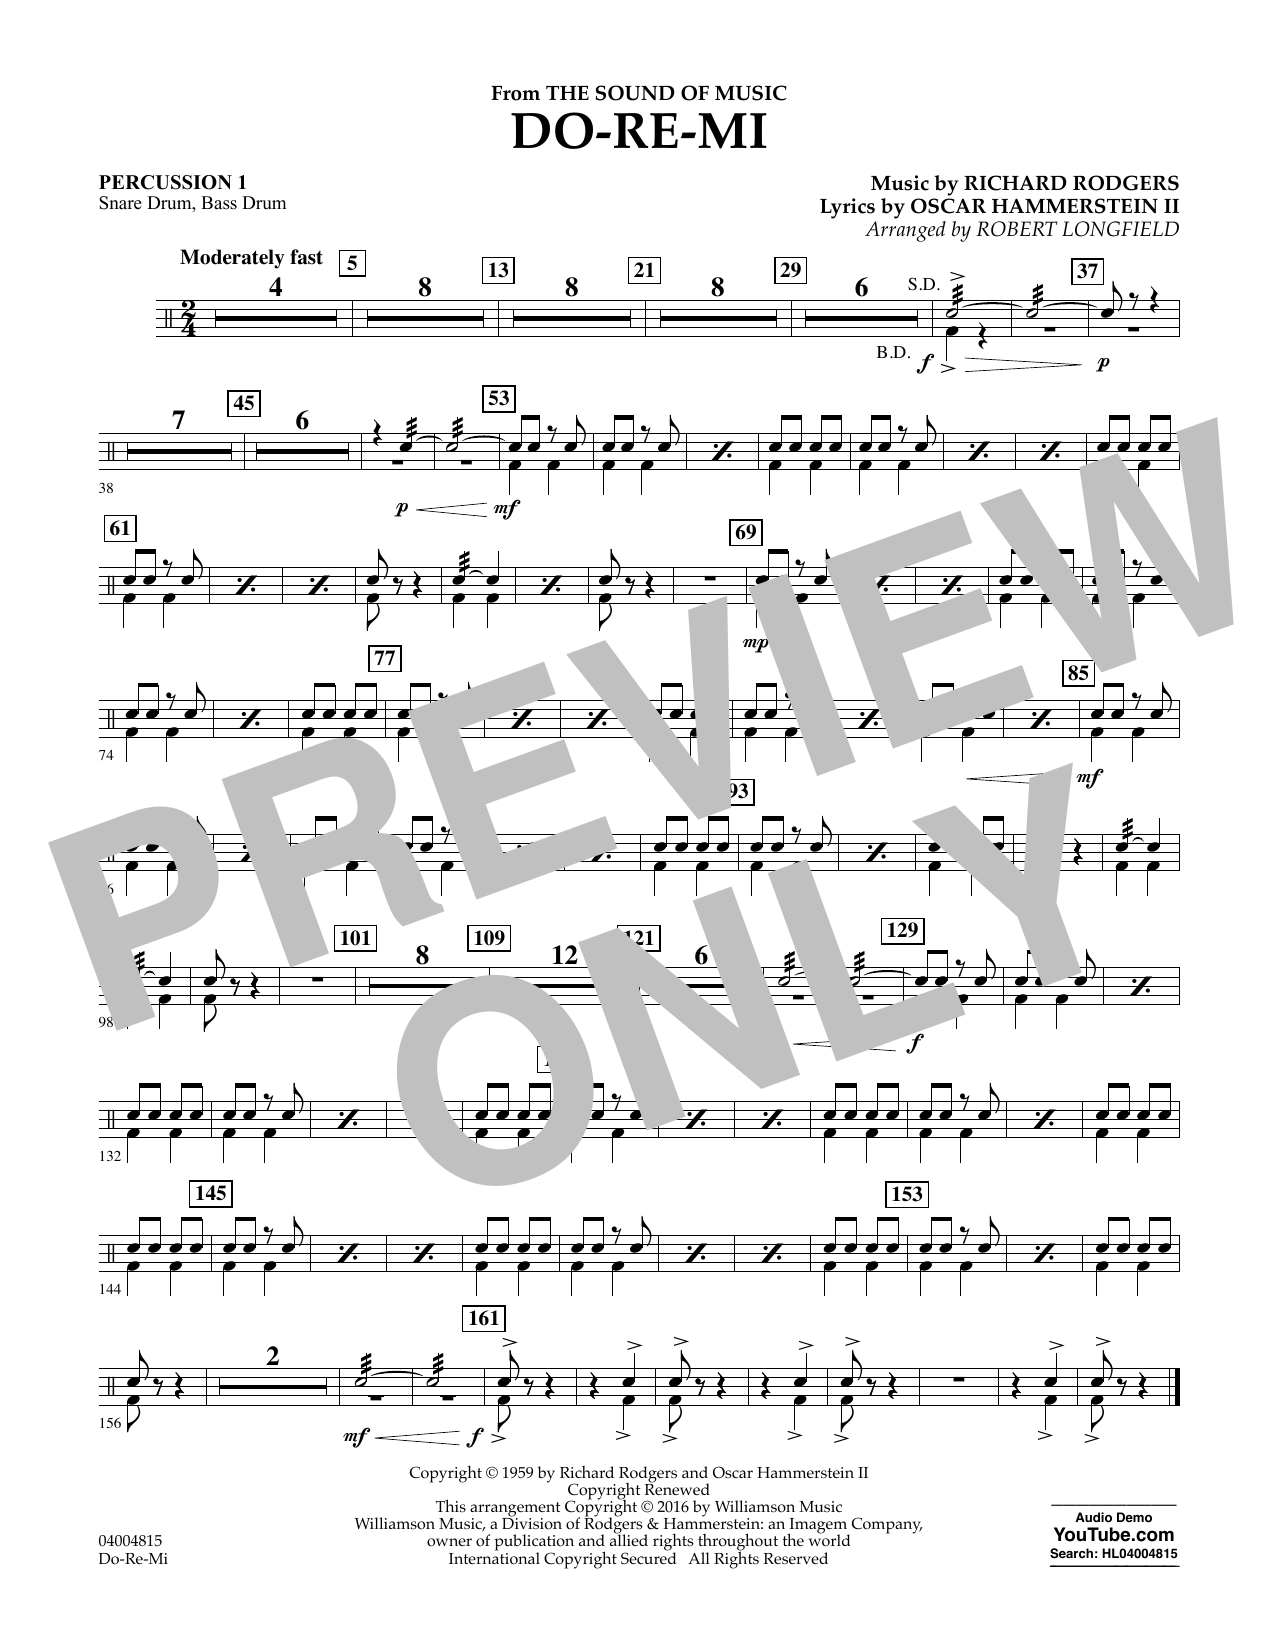 Do-Re-Mi (from The Sound of Music) - Percussion 1